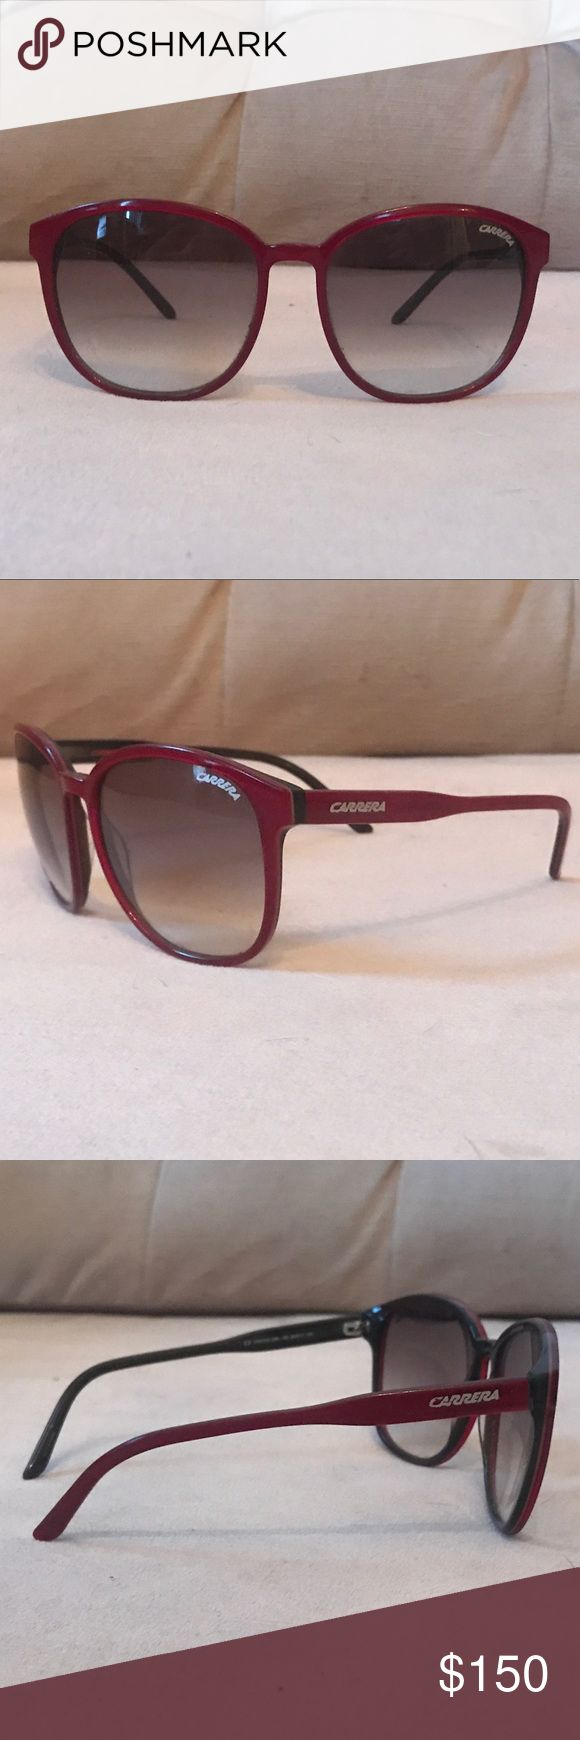 Carrera Sunglasses Red Carrera Sunglasses. Used only a couple times. Great condition! Carrera Accessories Sunglasses